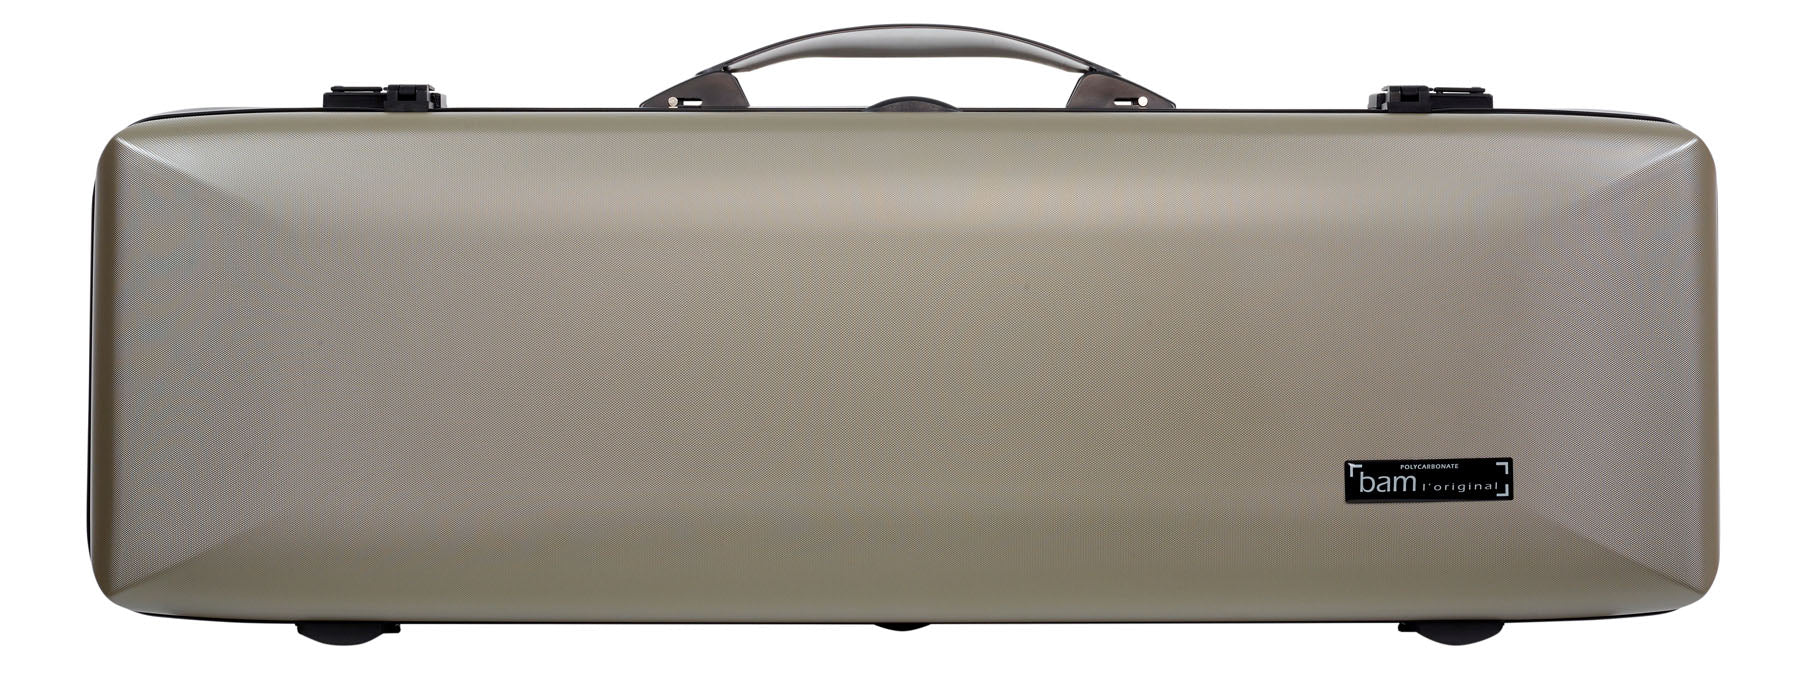 BAM SUPREME Hightech Oblong Violin Case